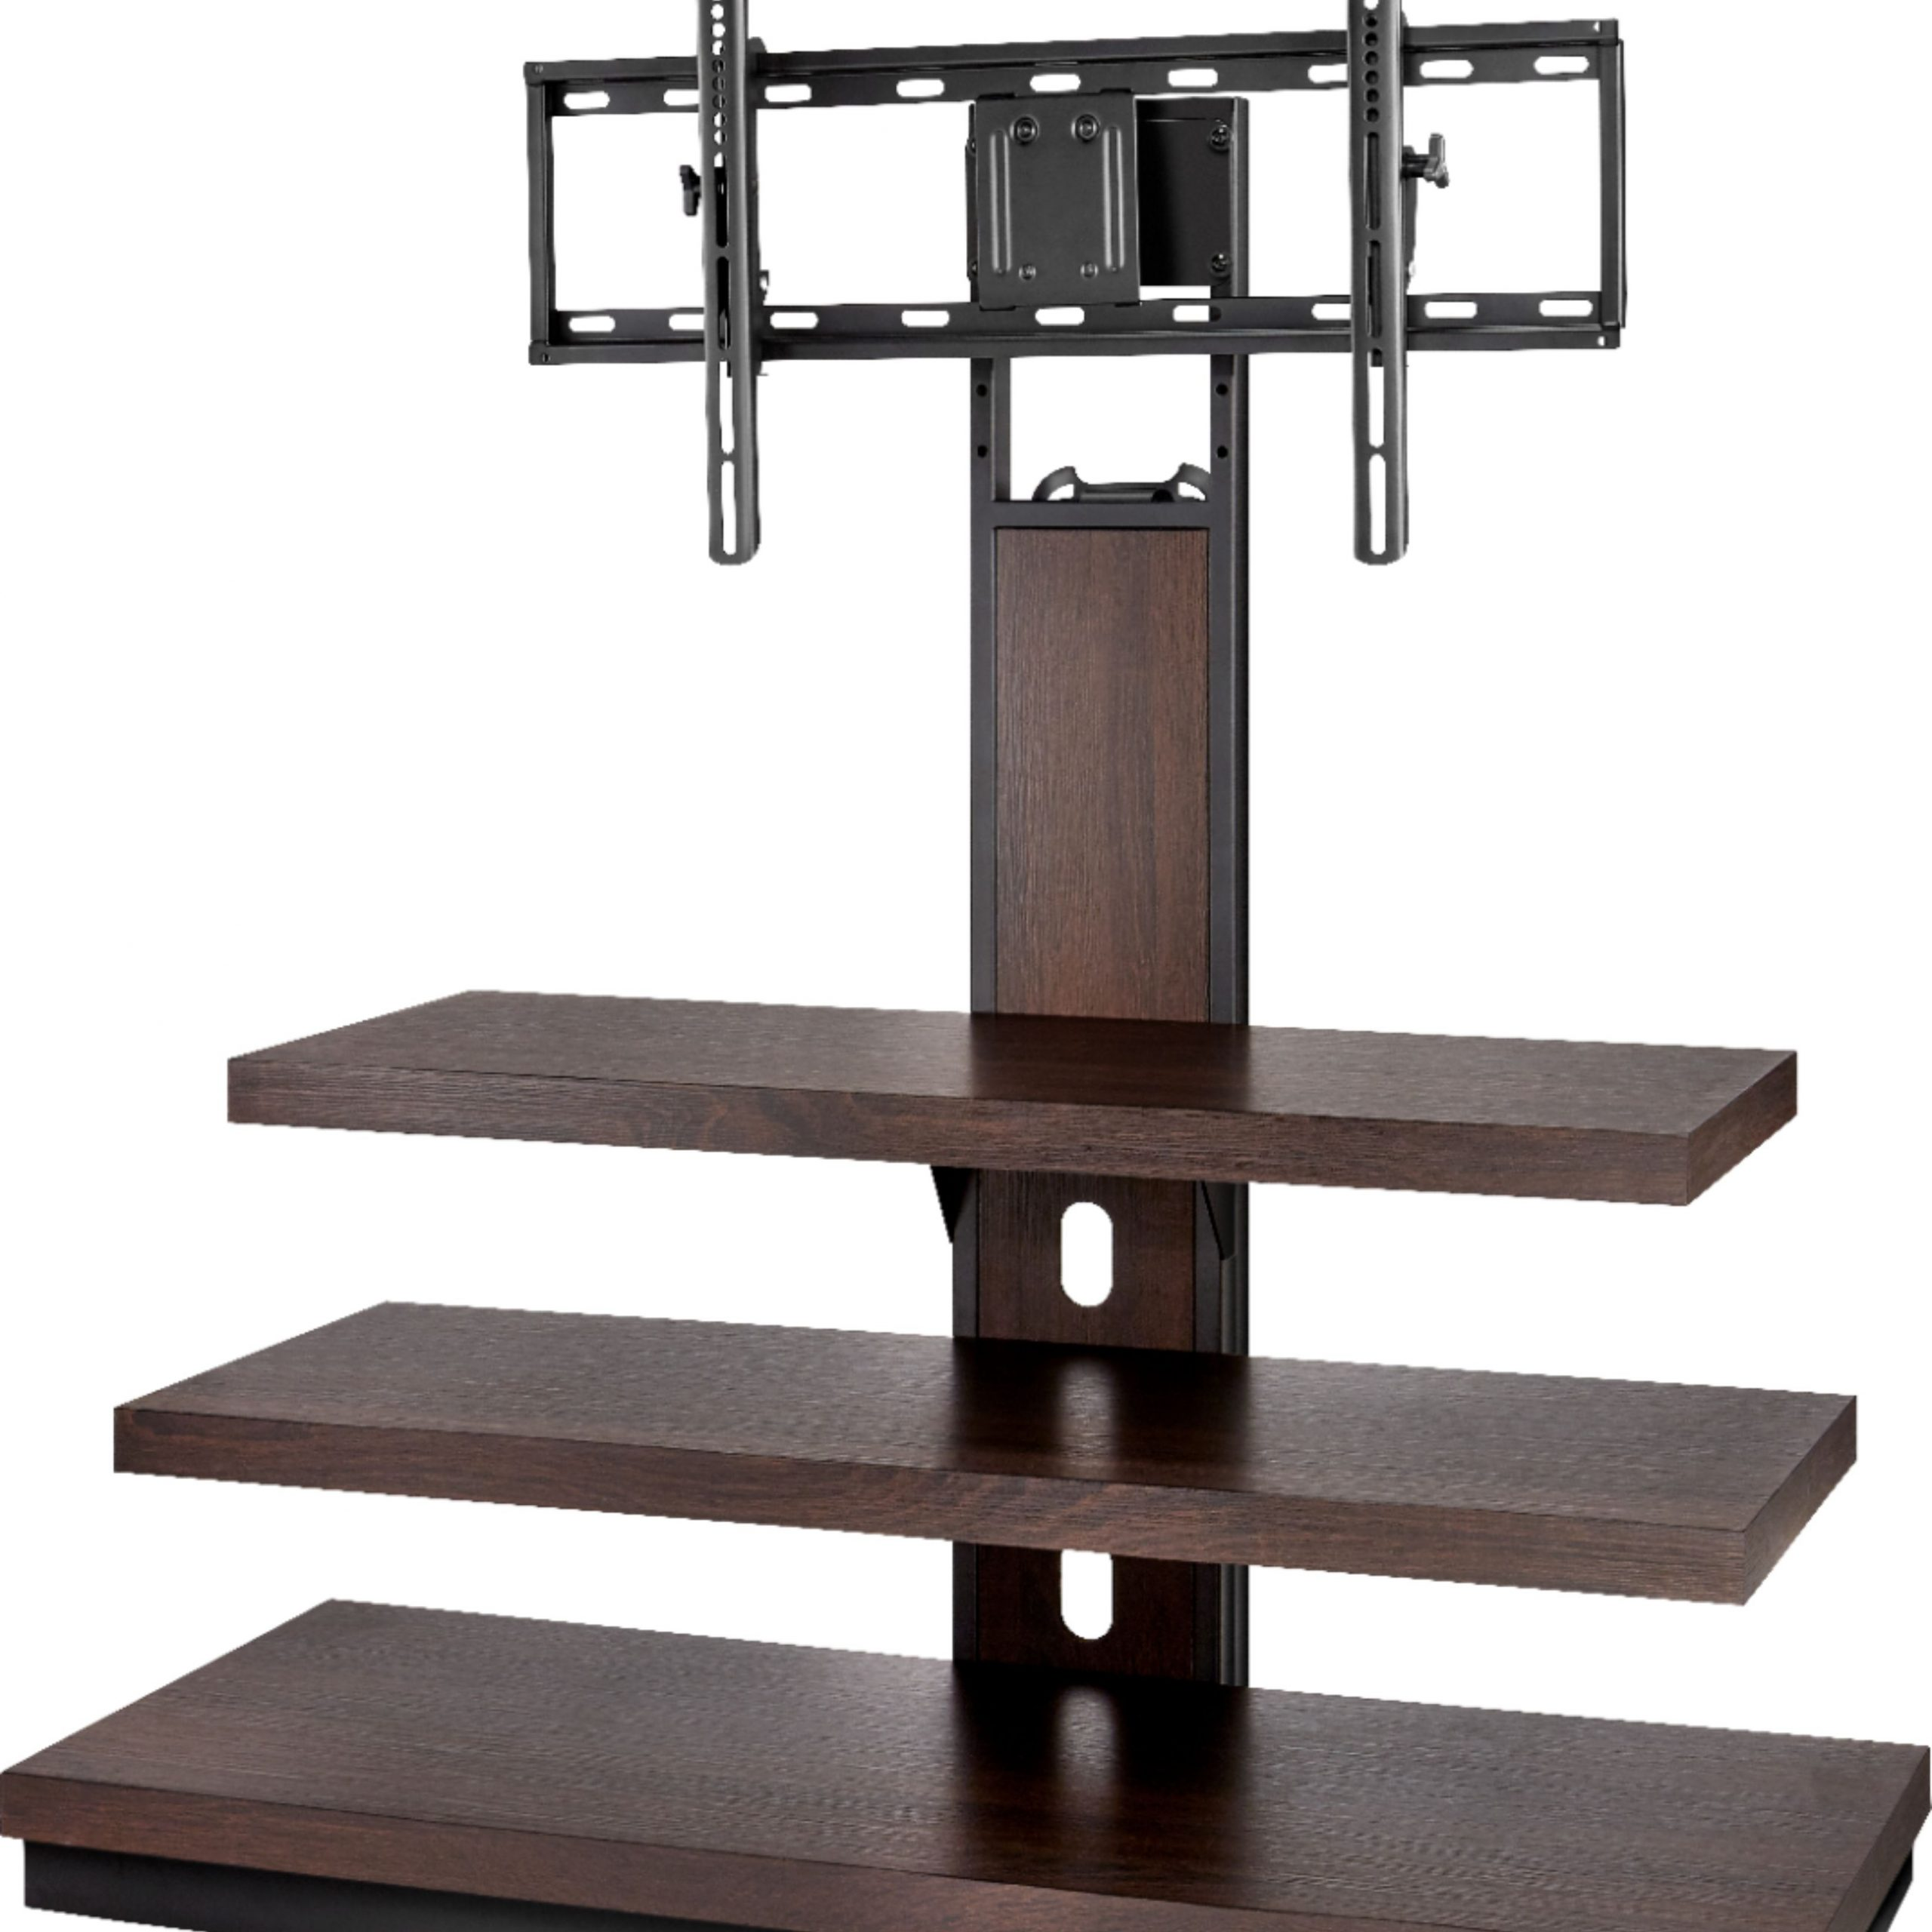 """Lansing Tv Stands For Tvs Up To 55"""" For Most Up To Date Insignia™ Tv Stand For Most Flat Panel Tvs Up To 55"""" Dark (View 20 of 25)"""